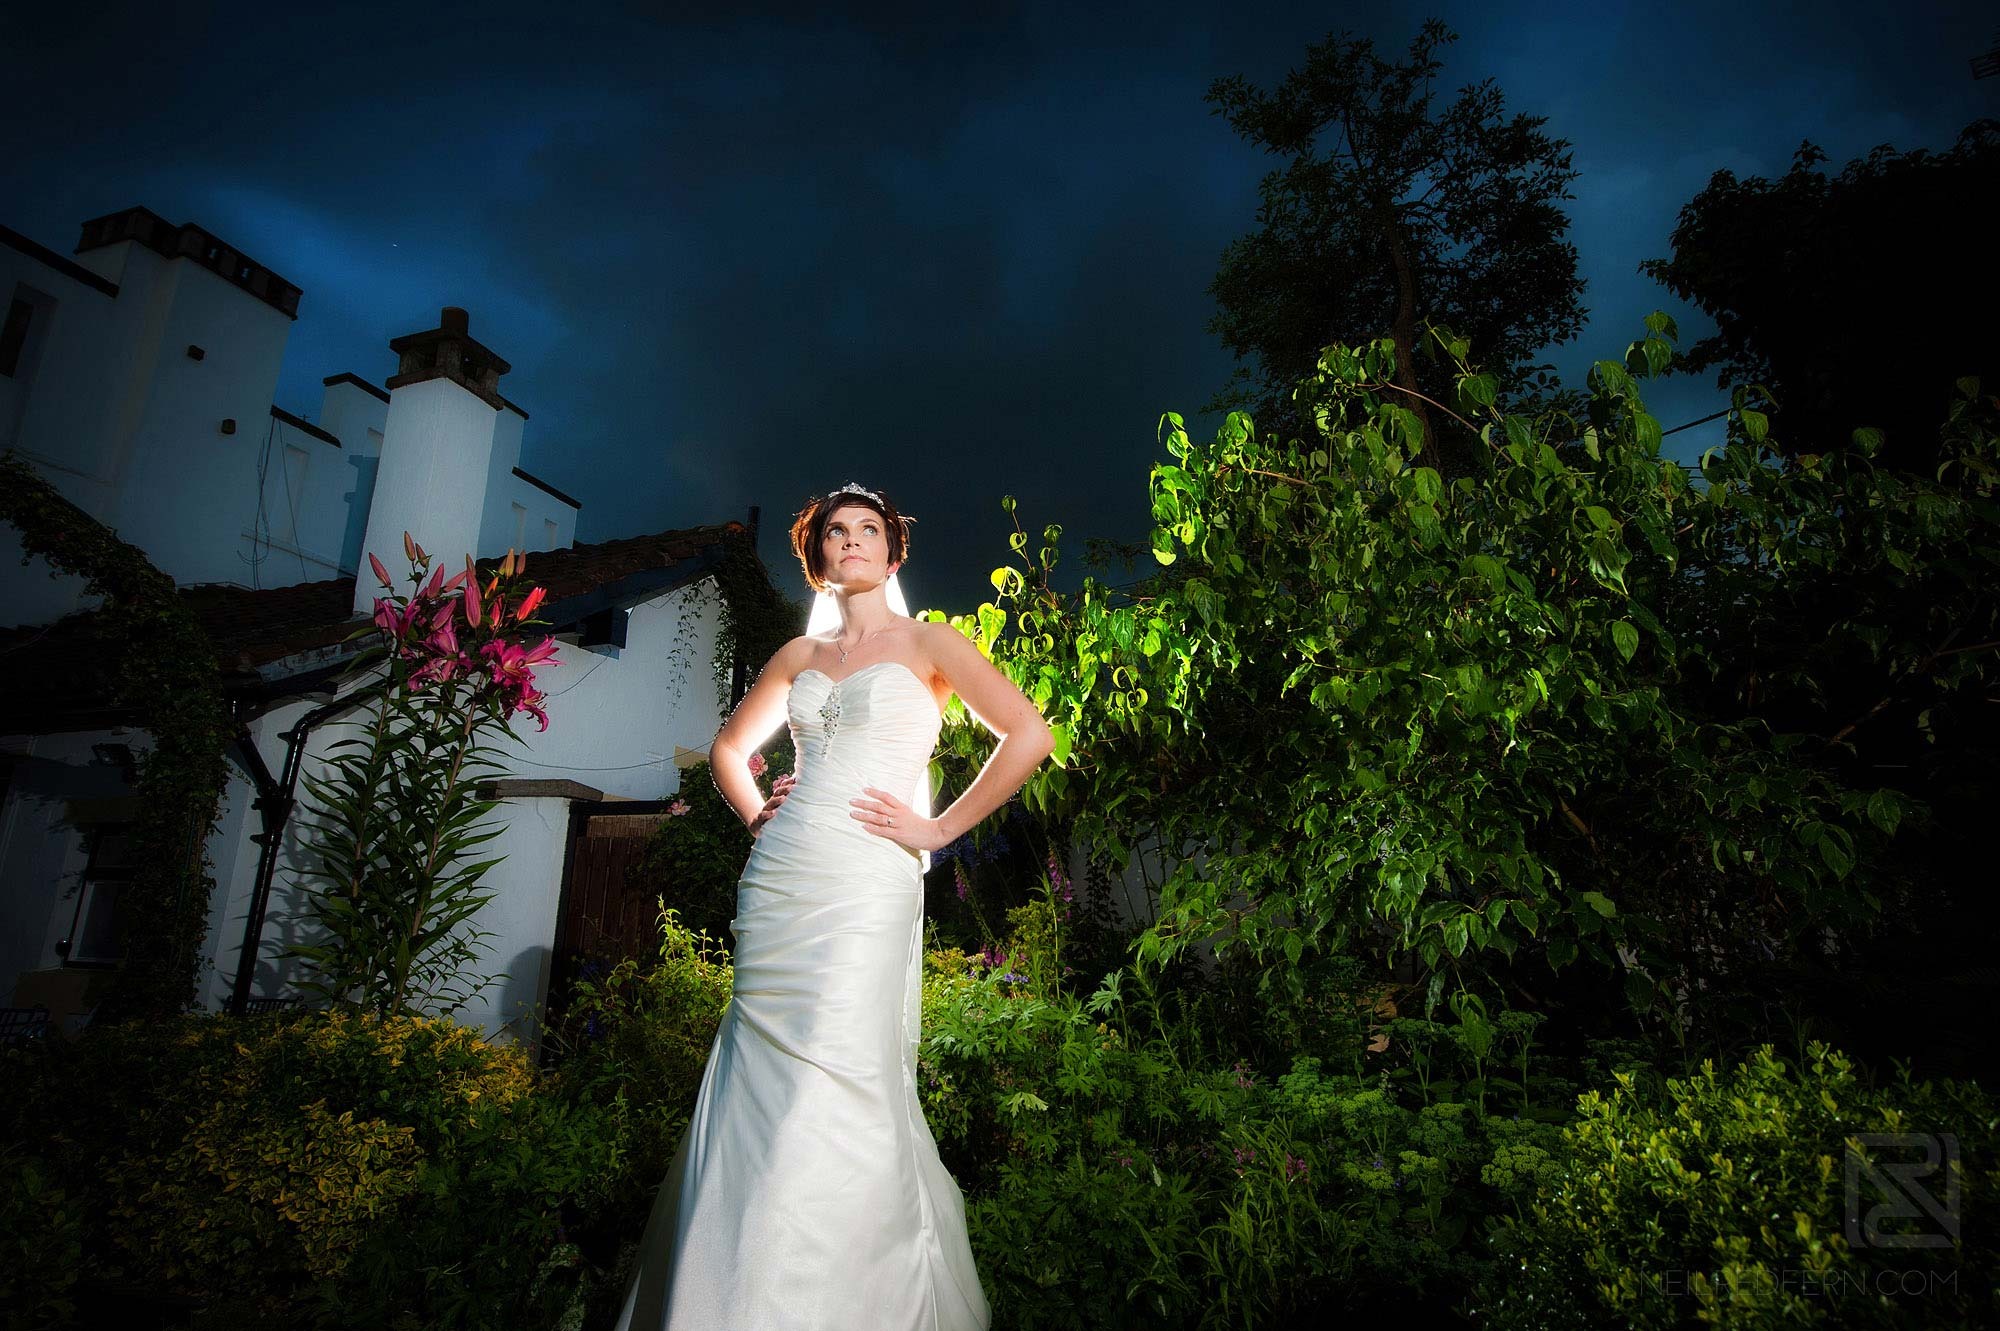 off camera flash portrait of bride outside the Belle Epoque